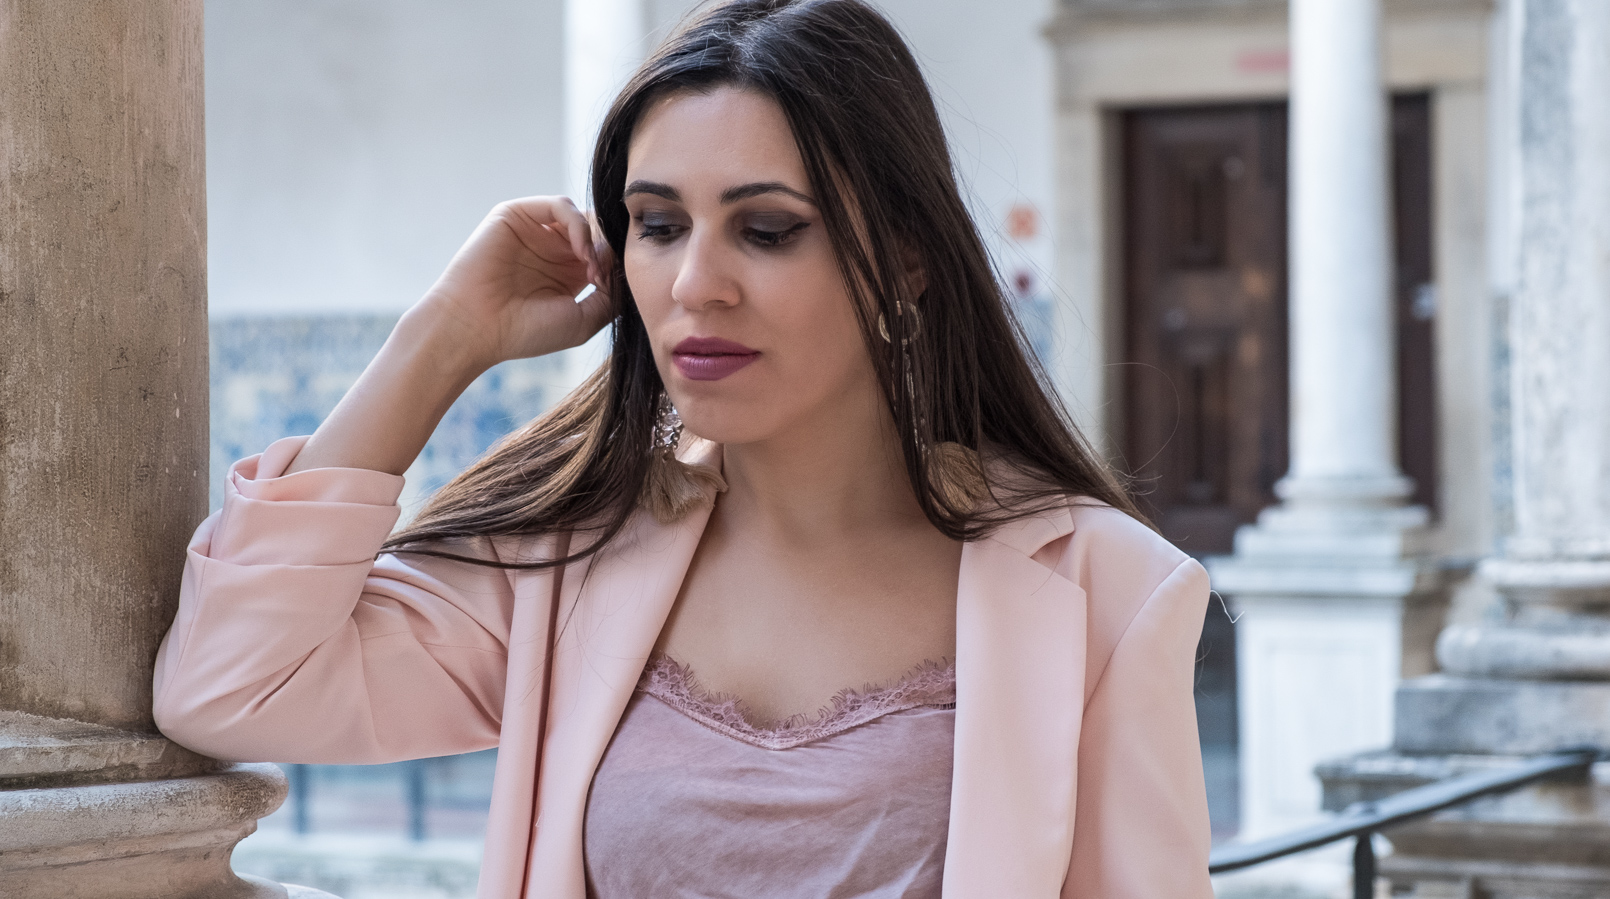 Le Fashionaire Transitional clothes: what to wear on the first days of fall? pale pink silk lace top old oversized pale hm blazer tassels pink pvc bold hm earrings 3554F EN